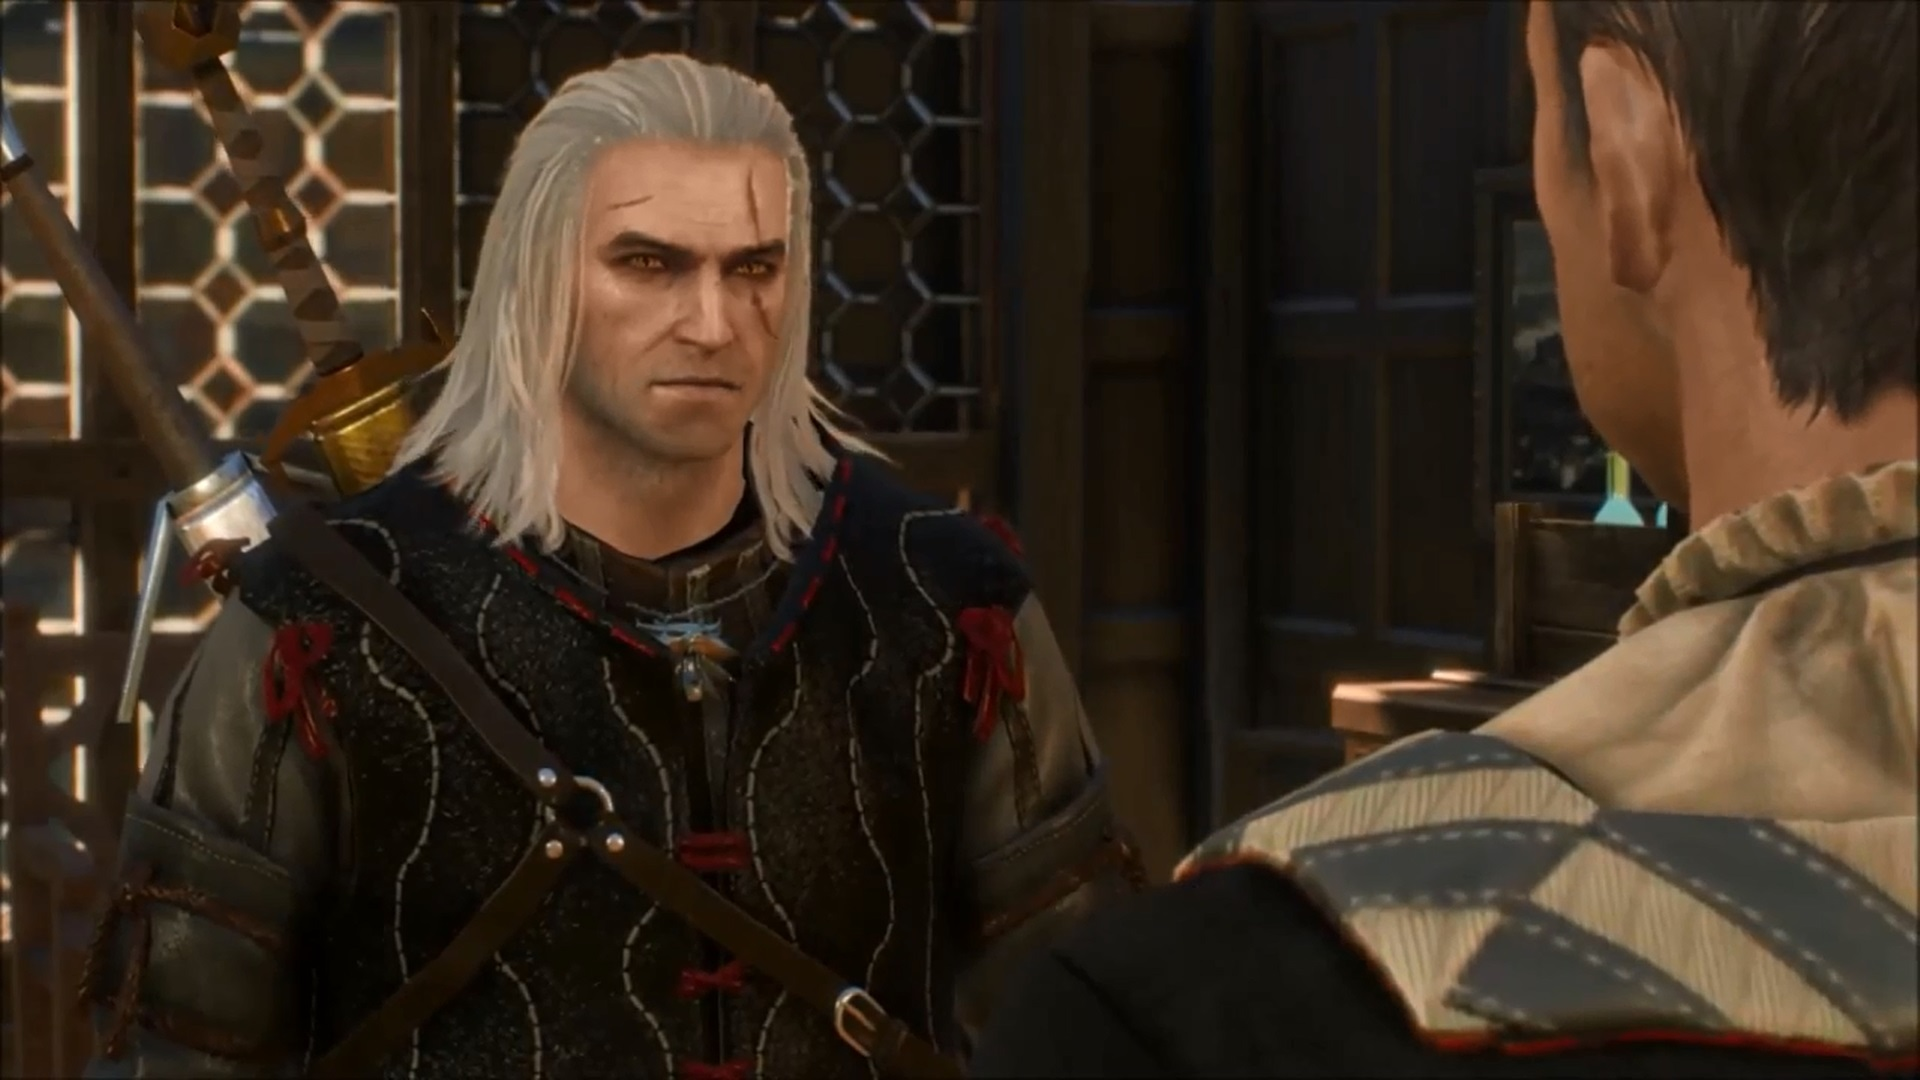 The Witcher 3 Frisuren Und Barte Makeover Fur Geralt